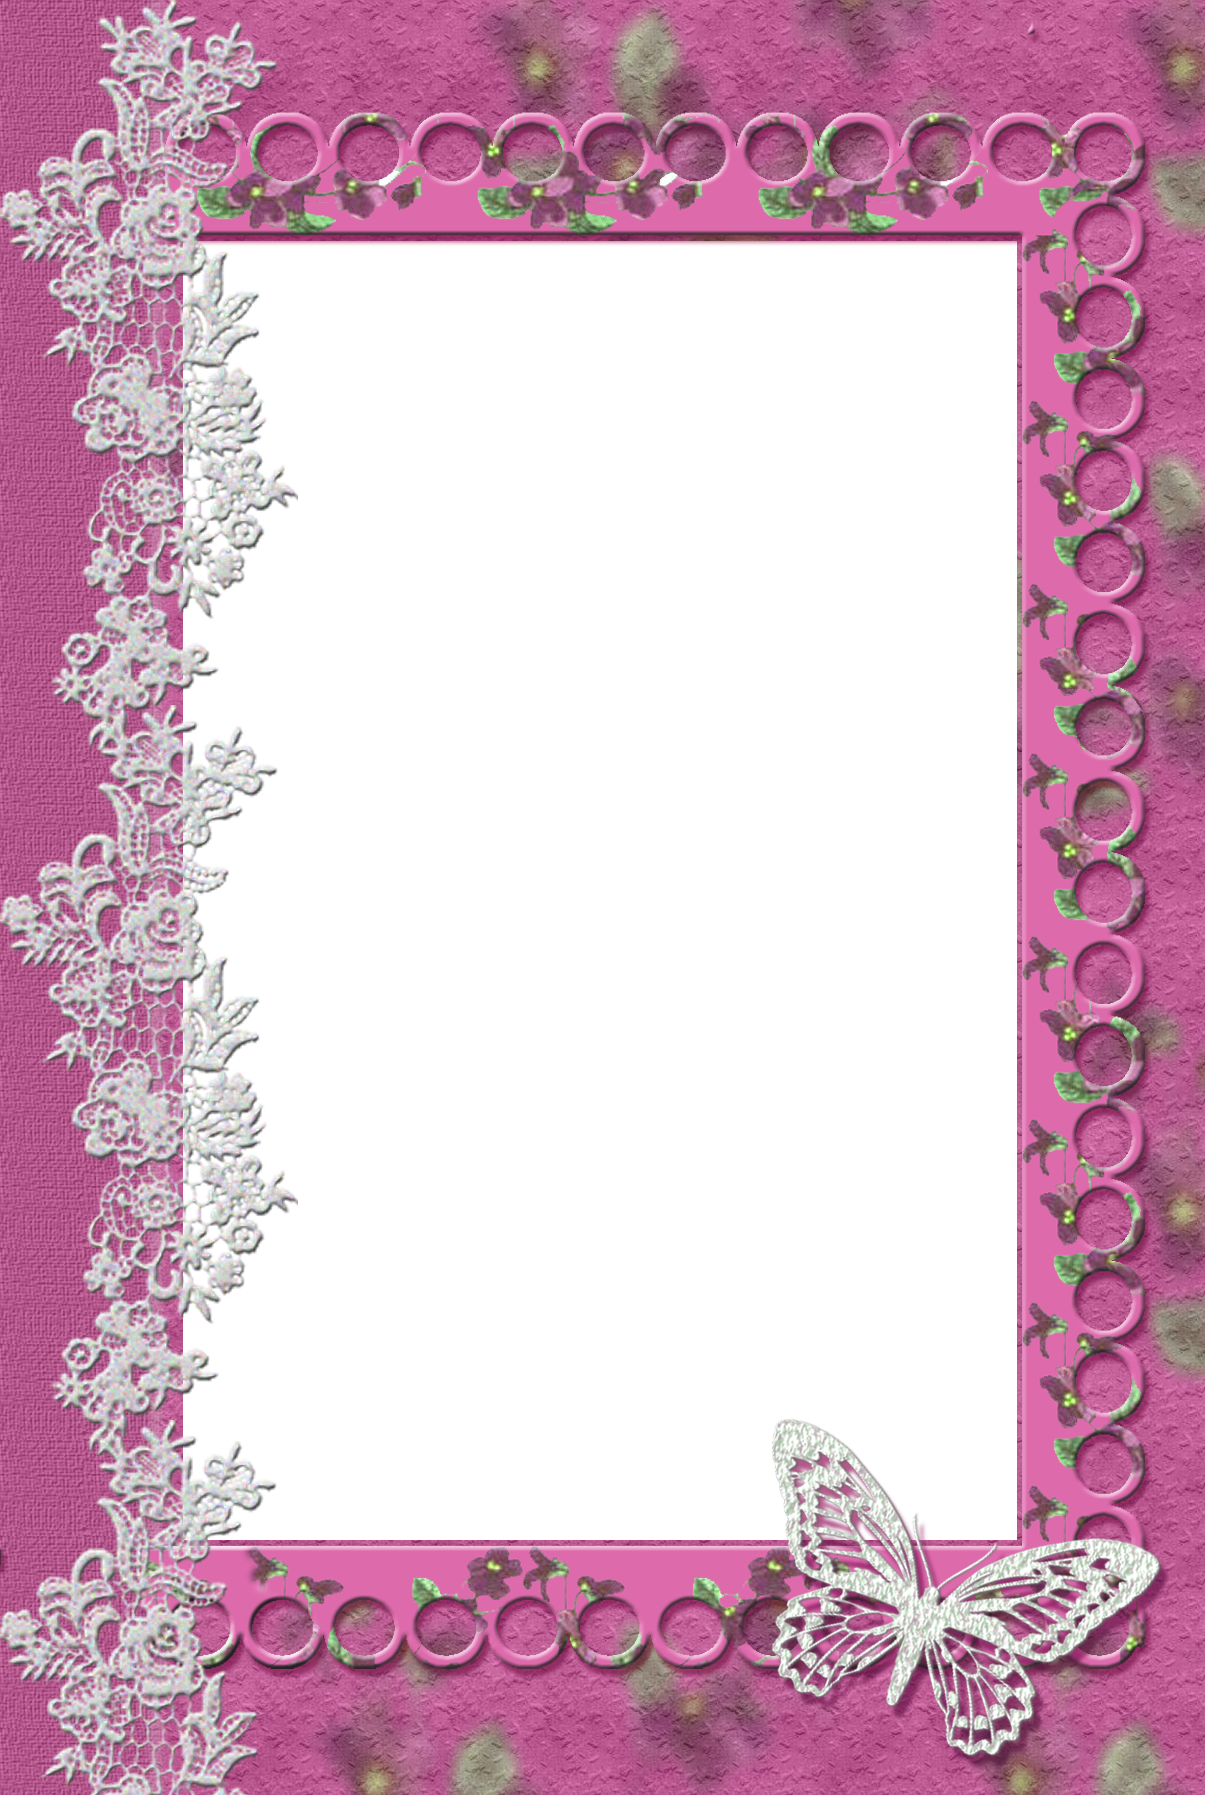 Lace clipart rectangle. Pink transparent frame with